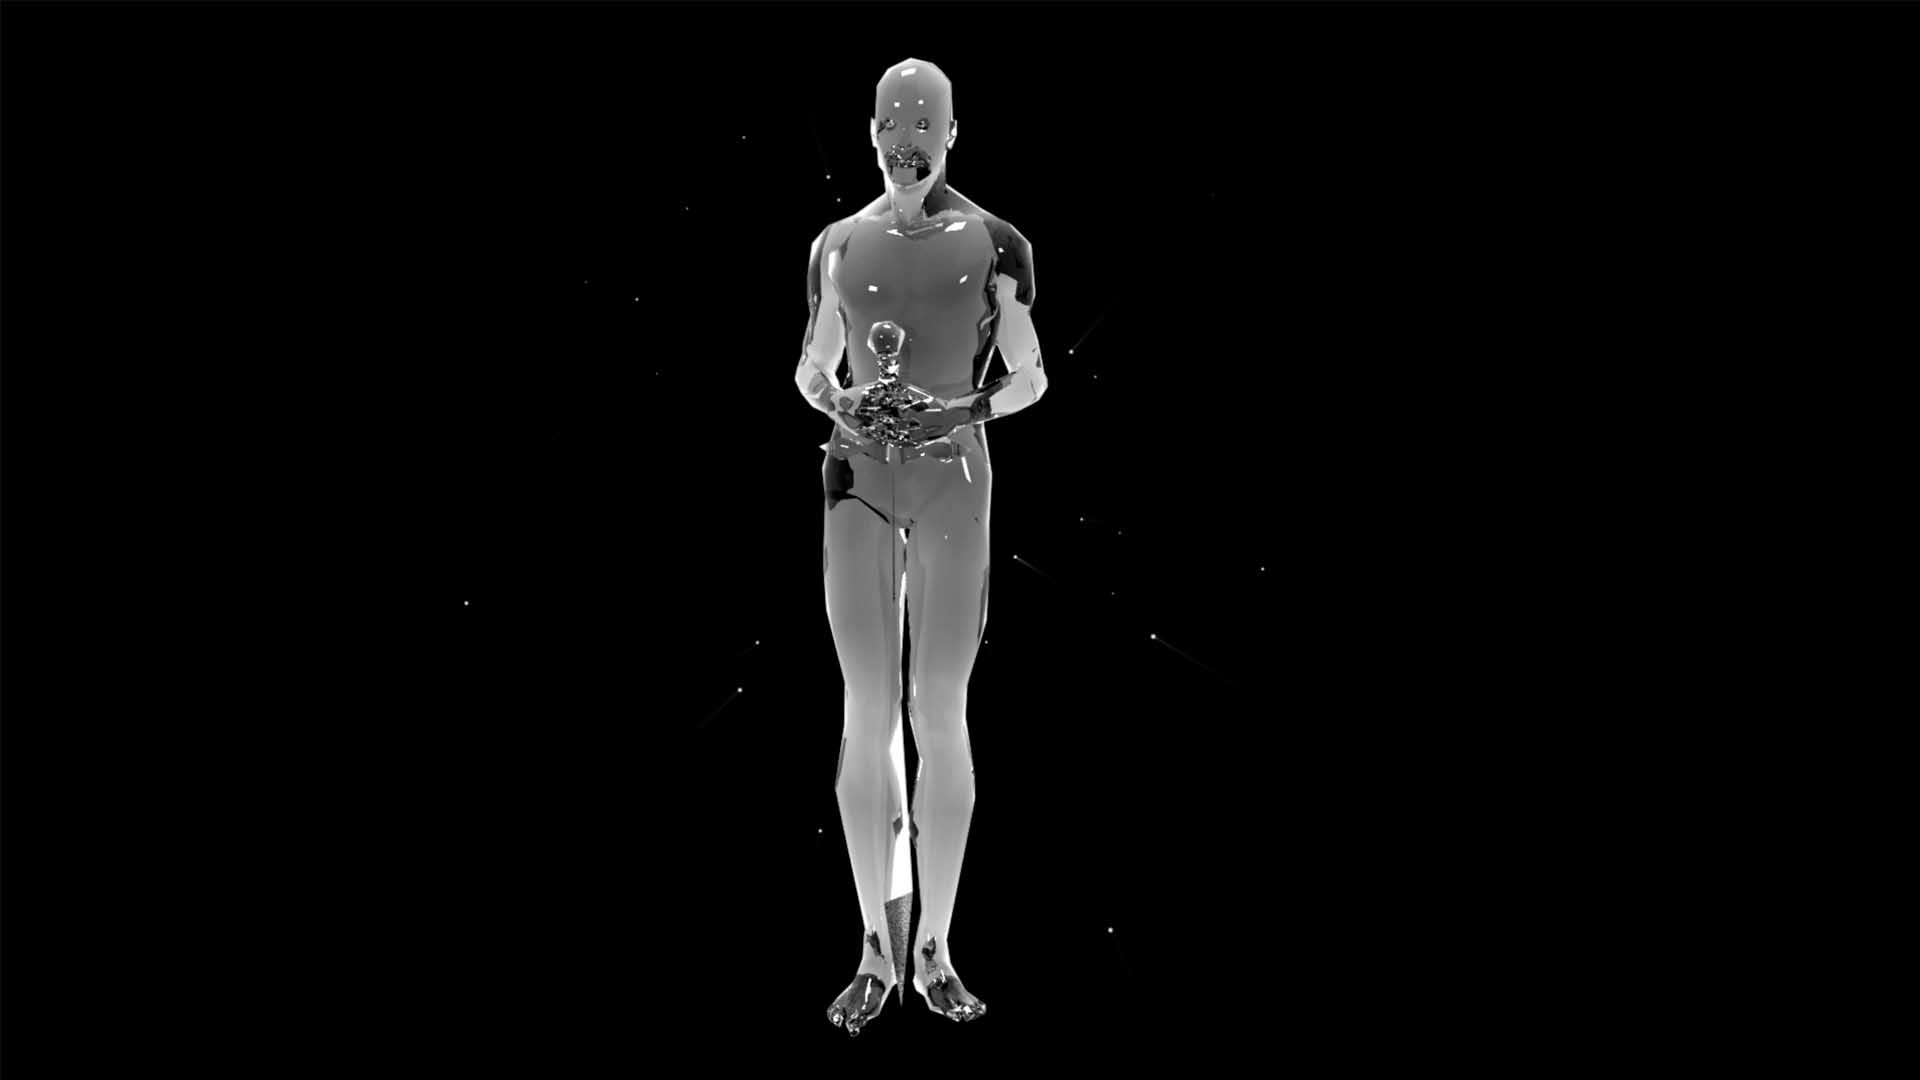 Liquid_Geometry_Statue_Isolated_on_Black_Background_Video_VJ_loop Knight